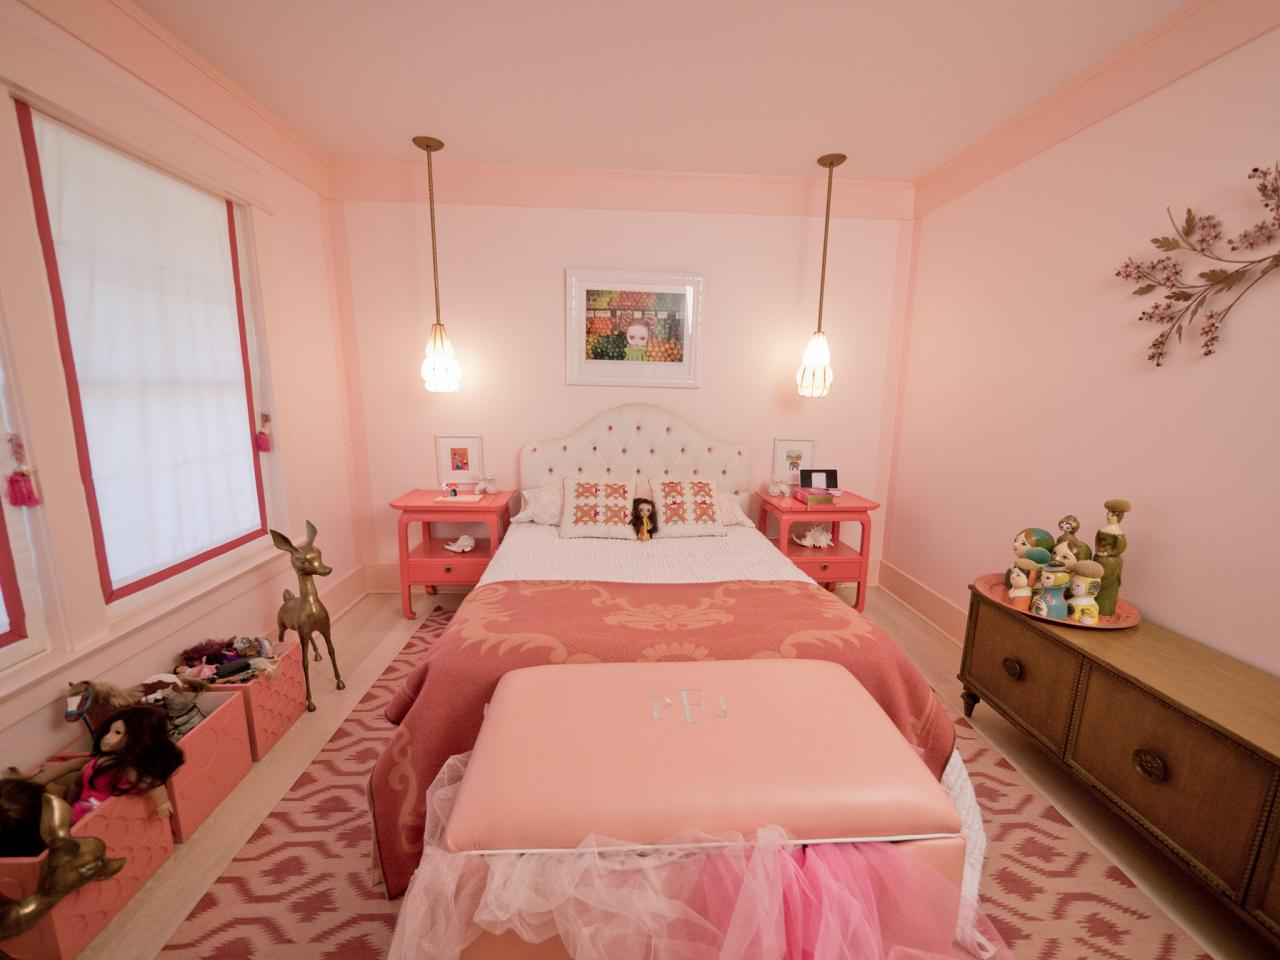 11 year old girl bedroom ideas 11 year old girl bedroom ideas